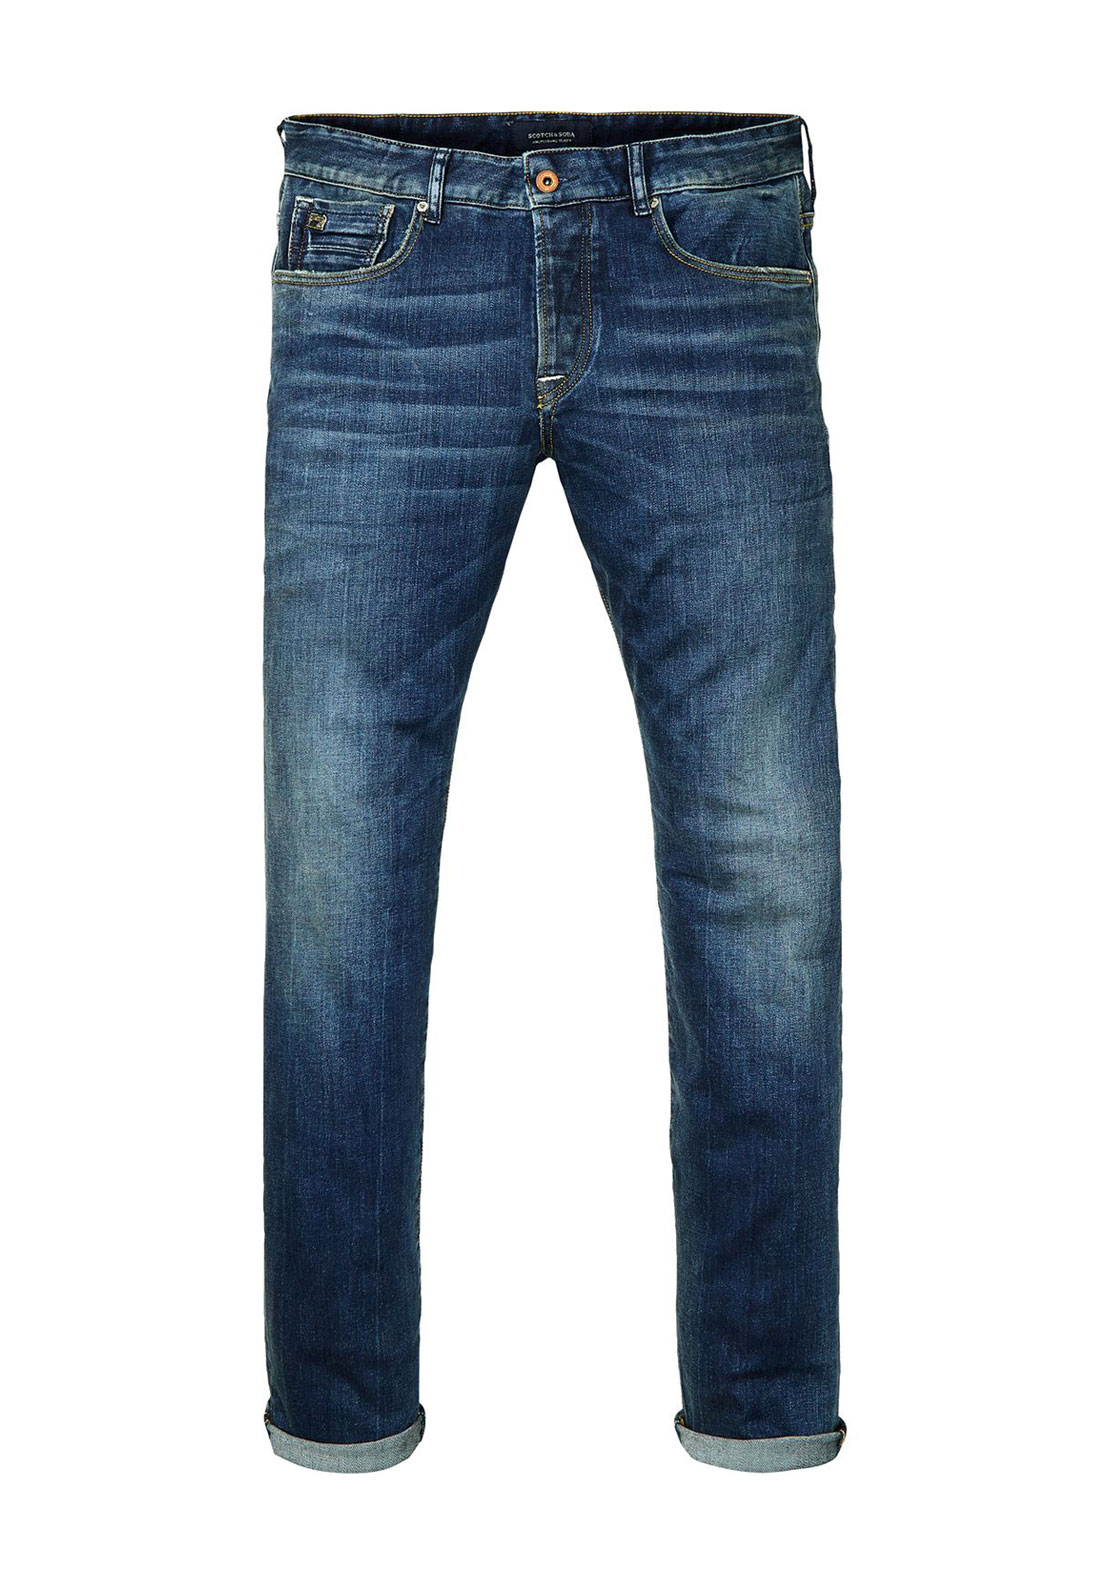 Scotch & Soda Mens Ralston Best Of Blue Jean, Indigo